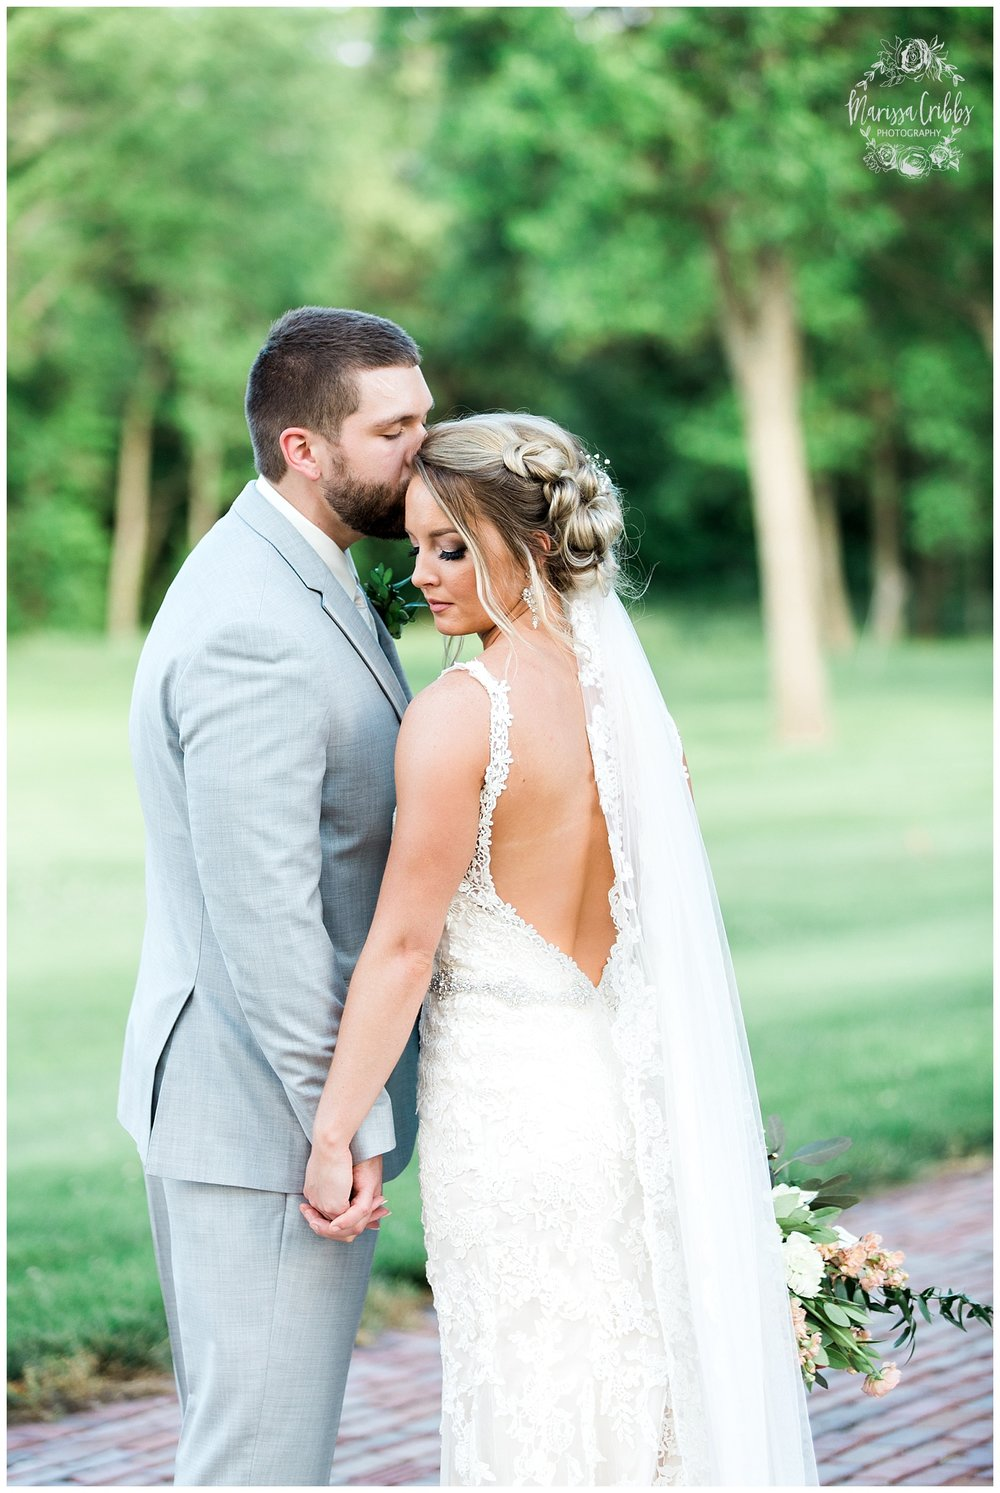 CHELSEY & TRAVIS MARRIED | MILDALE FARM WEDDING | KC WEDDING PHOTOGRAPHERS | MARISSA CRIBBS PHOTOGRAPHY_1323.jpg